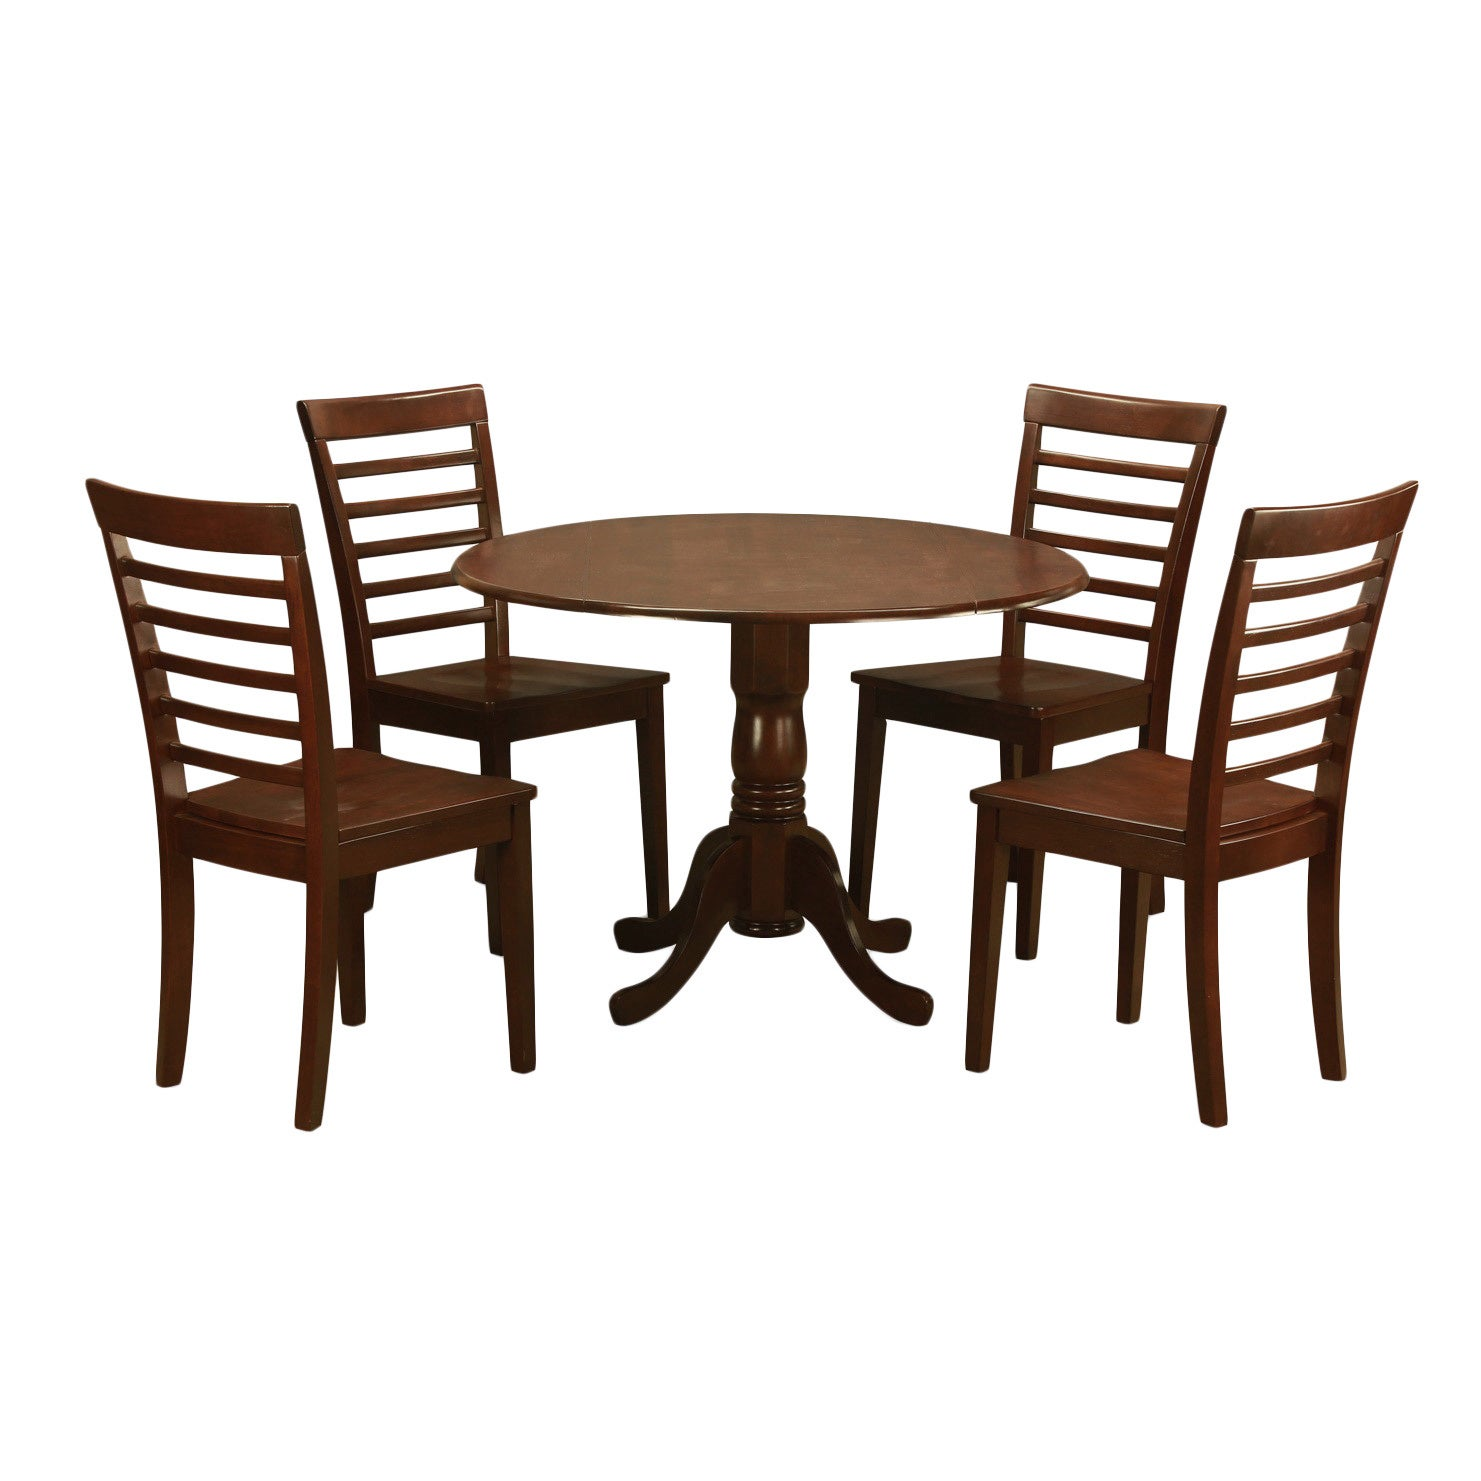 Mahogany Small Kitchen Table and 4 Chairs 5-piece Dining ...